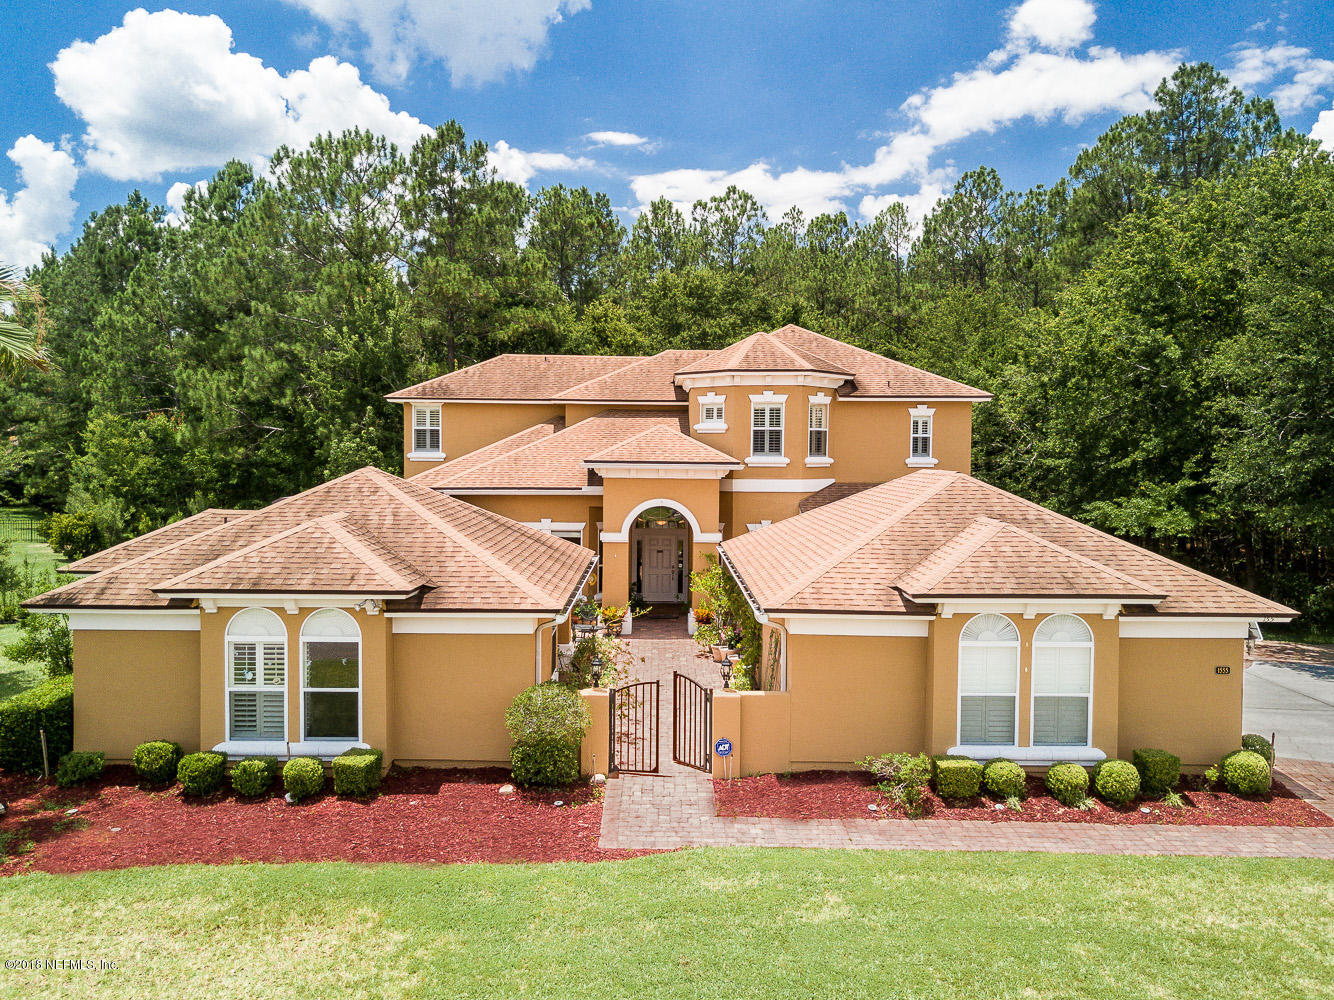 1555 GREEN MOSS, ORANGE PARK, FLORIDA 32065, 6 Bedrooms Bedrooms, ,6 BathroomsBathrooms,Residential - single family,For sale,GREEN MOSS,958206